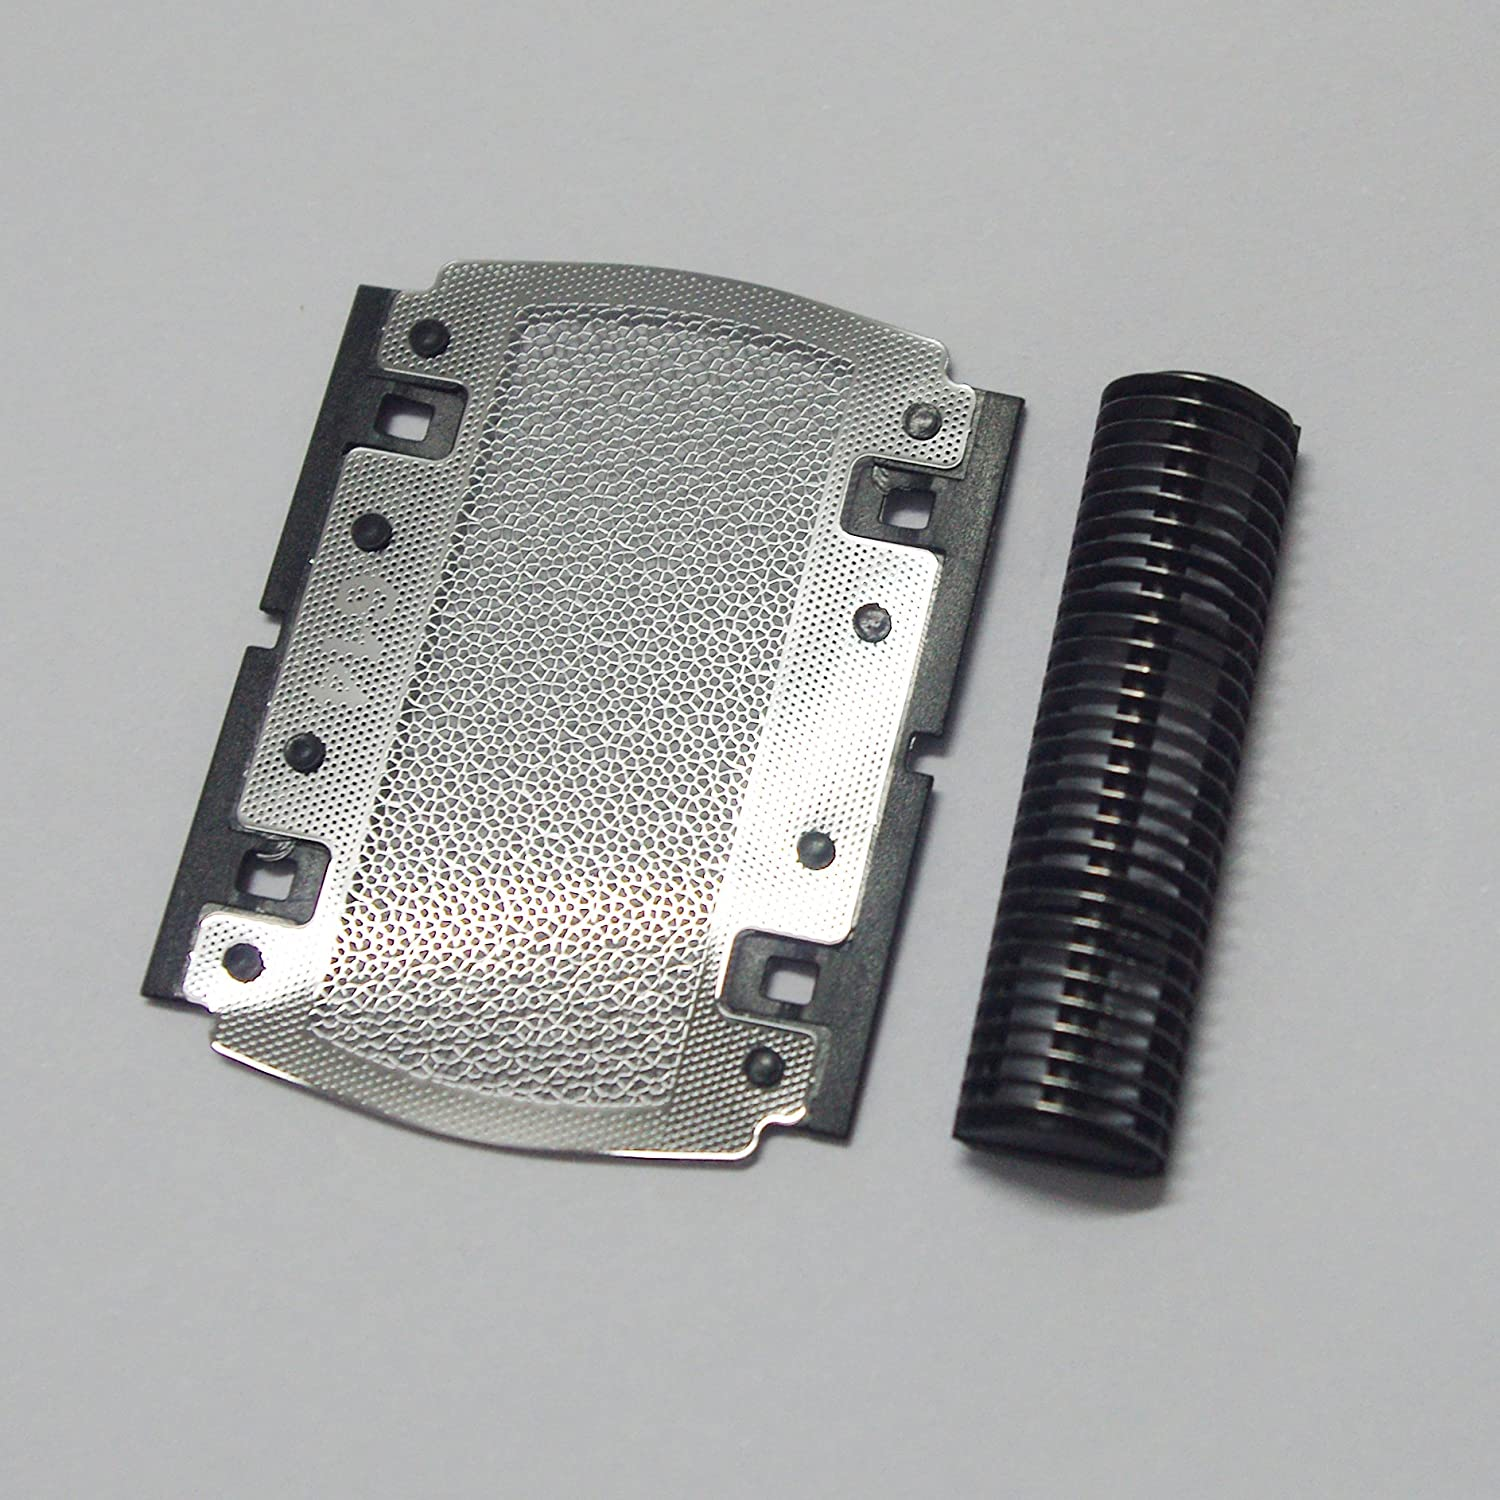 Shaver/Razor Replacement Foil& Cutters for BRAUN 350 355 370 375 5614 5615 P10 Free Shipping by Ronsit